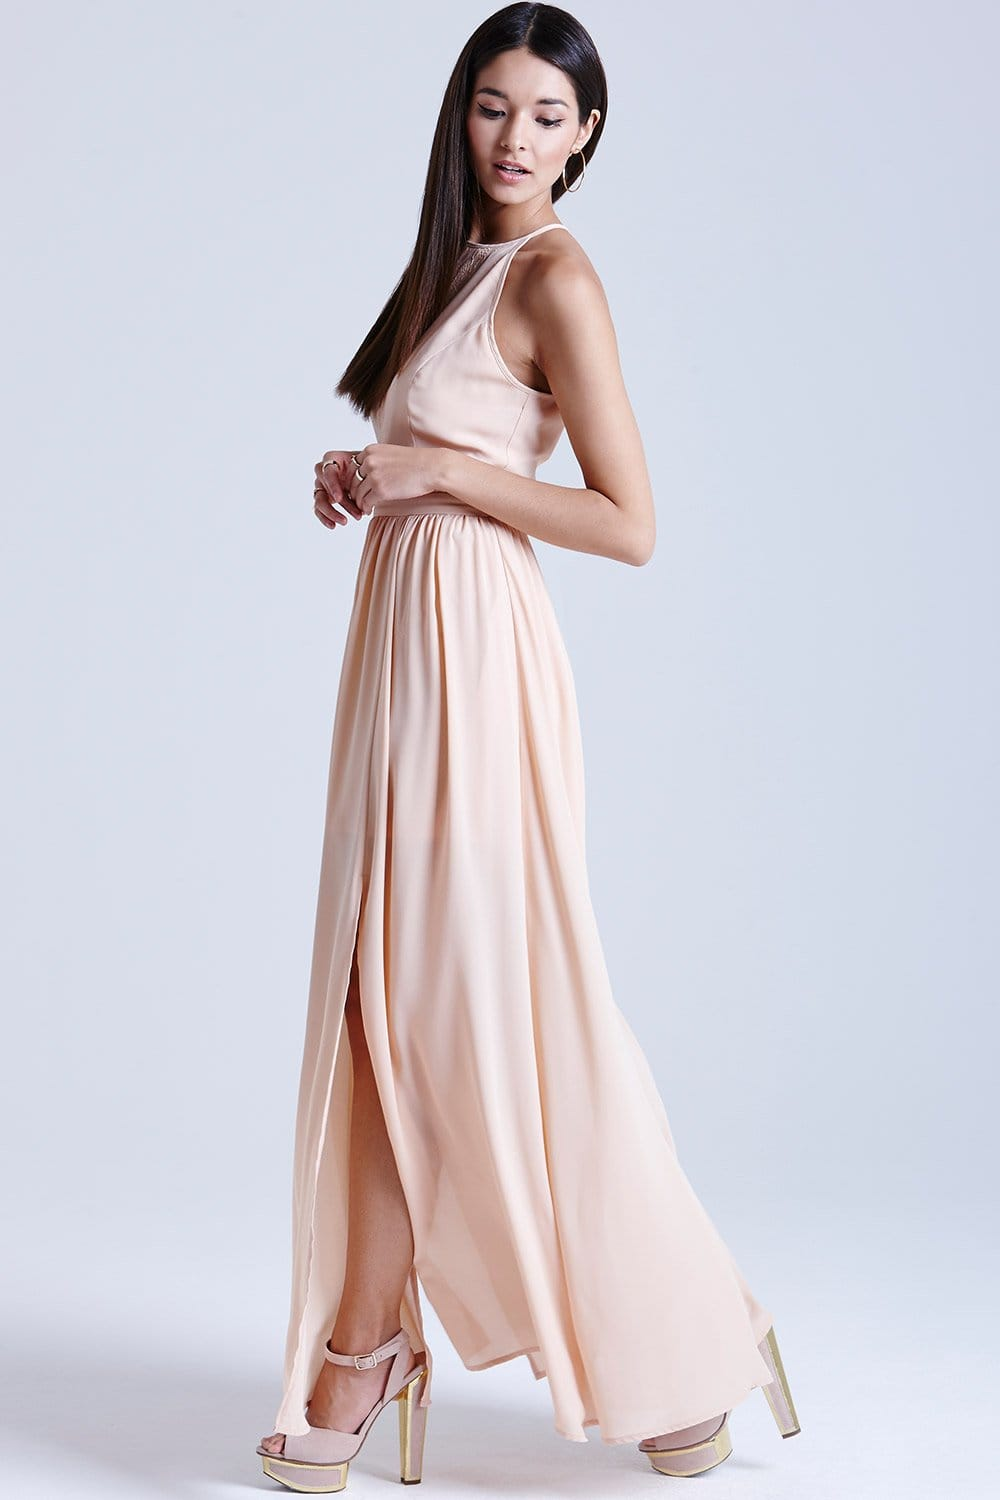 Outlet Girls On Film Peach Lace Insert Maxi Dress Outlet